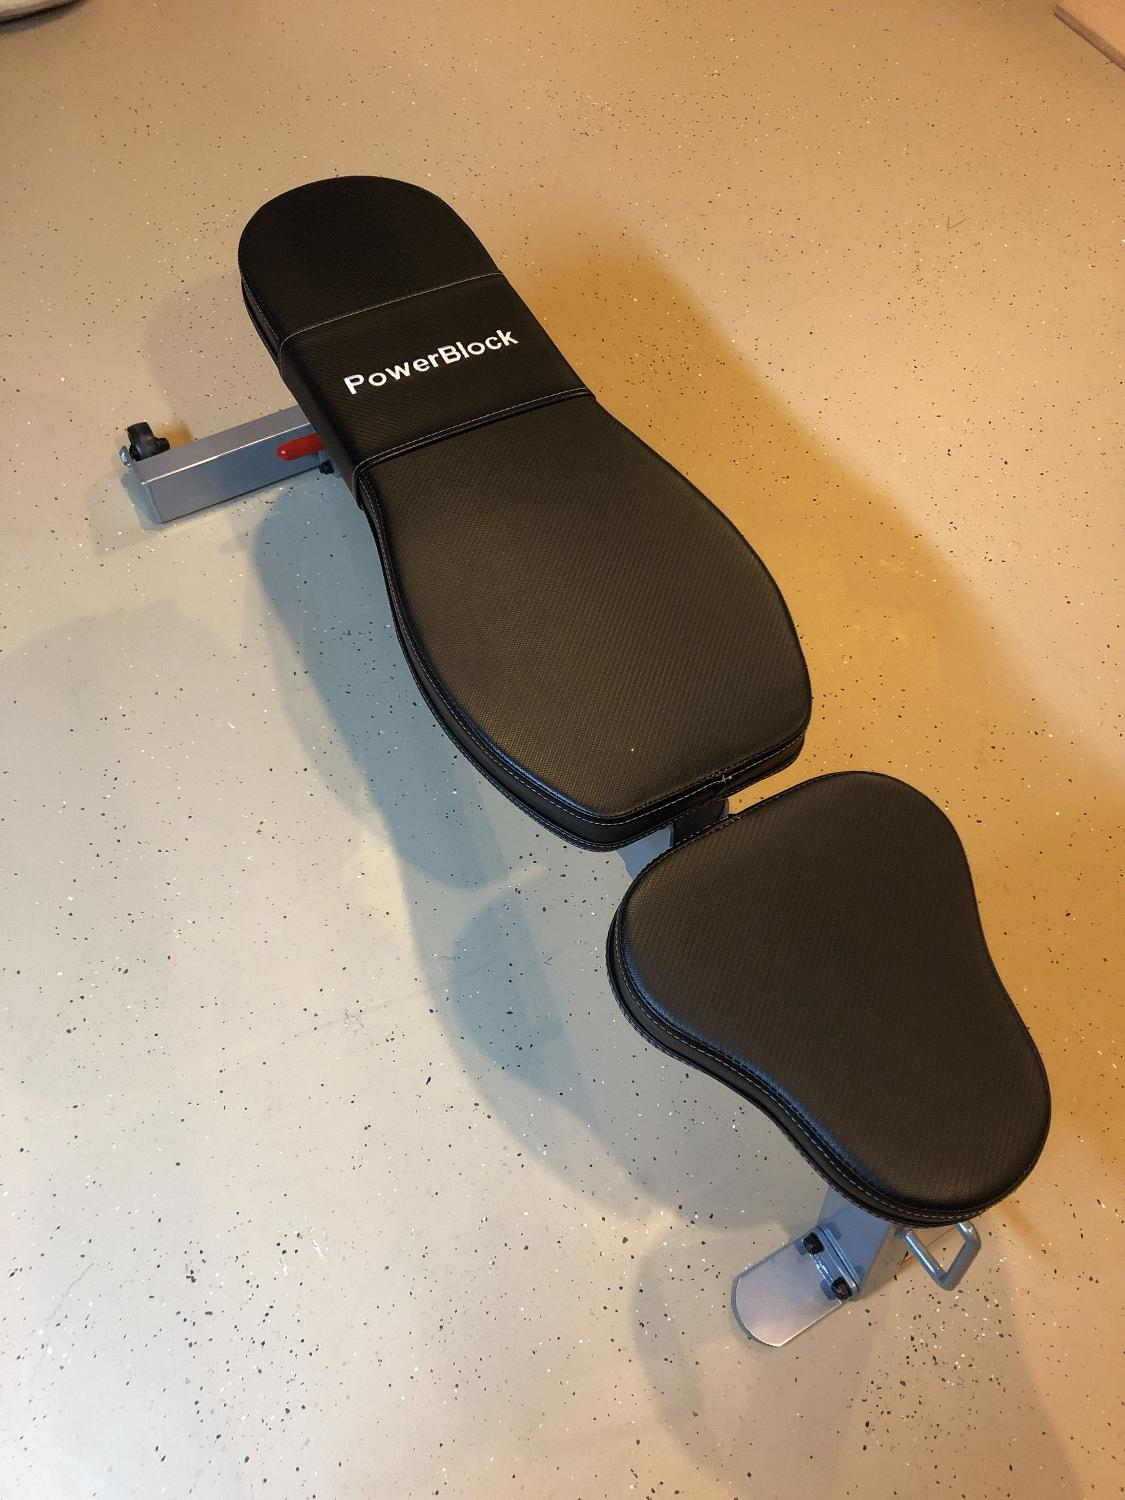 Find More Powerblock Weight Bench Like New For Sale At Up To 90 Off